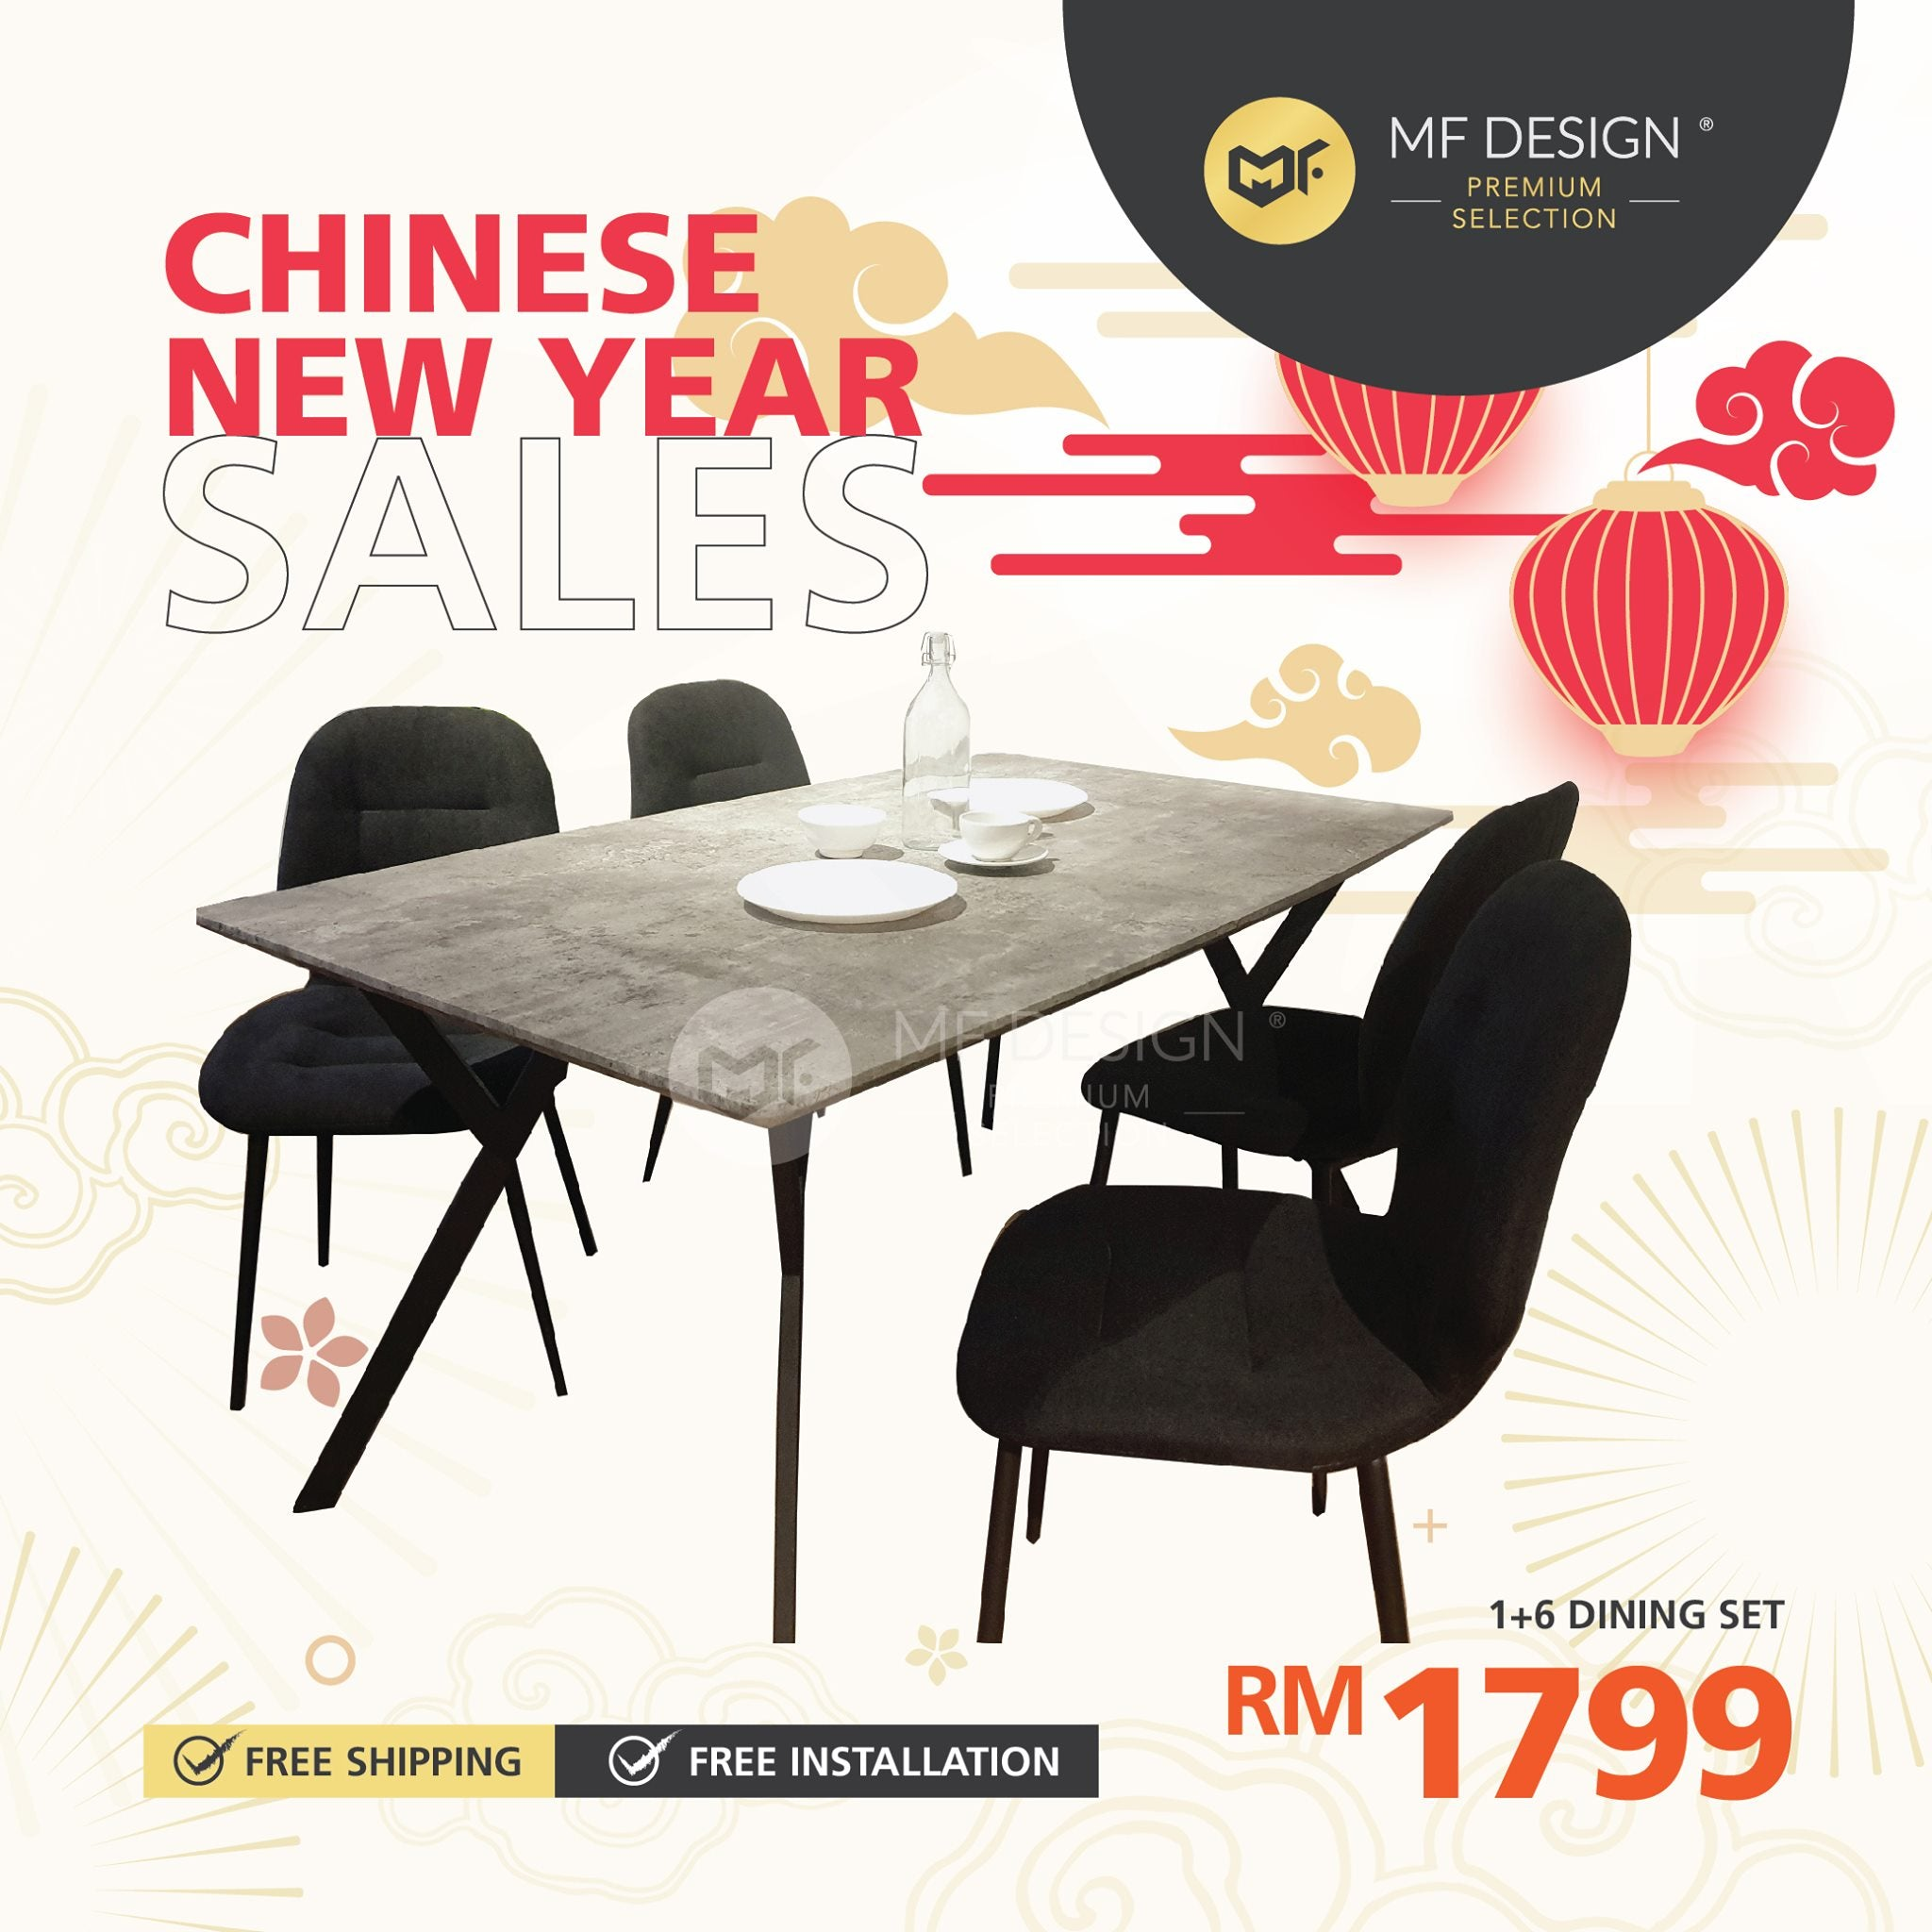 (Free Delivery)  MFD Premium Jacob Dining Set Dining set / 1+6 Set / Chair / Table / 6 Seater / Meja Makan Kerusi